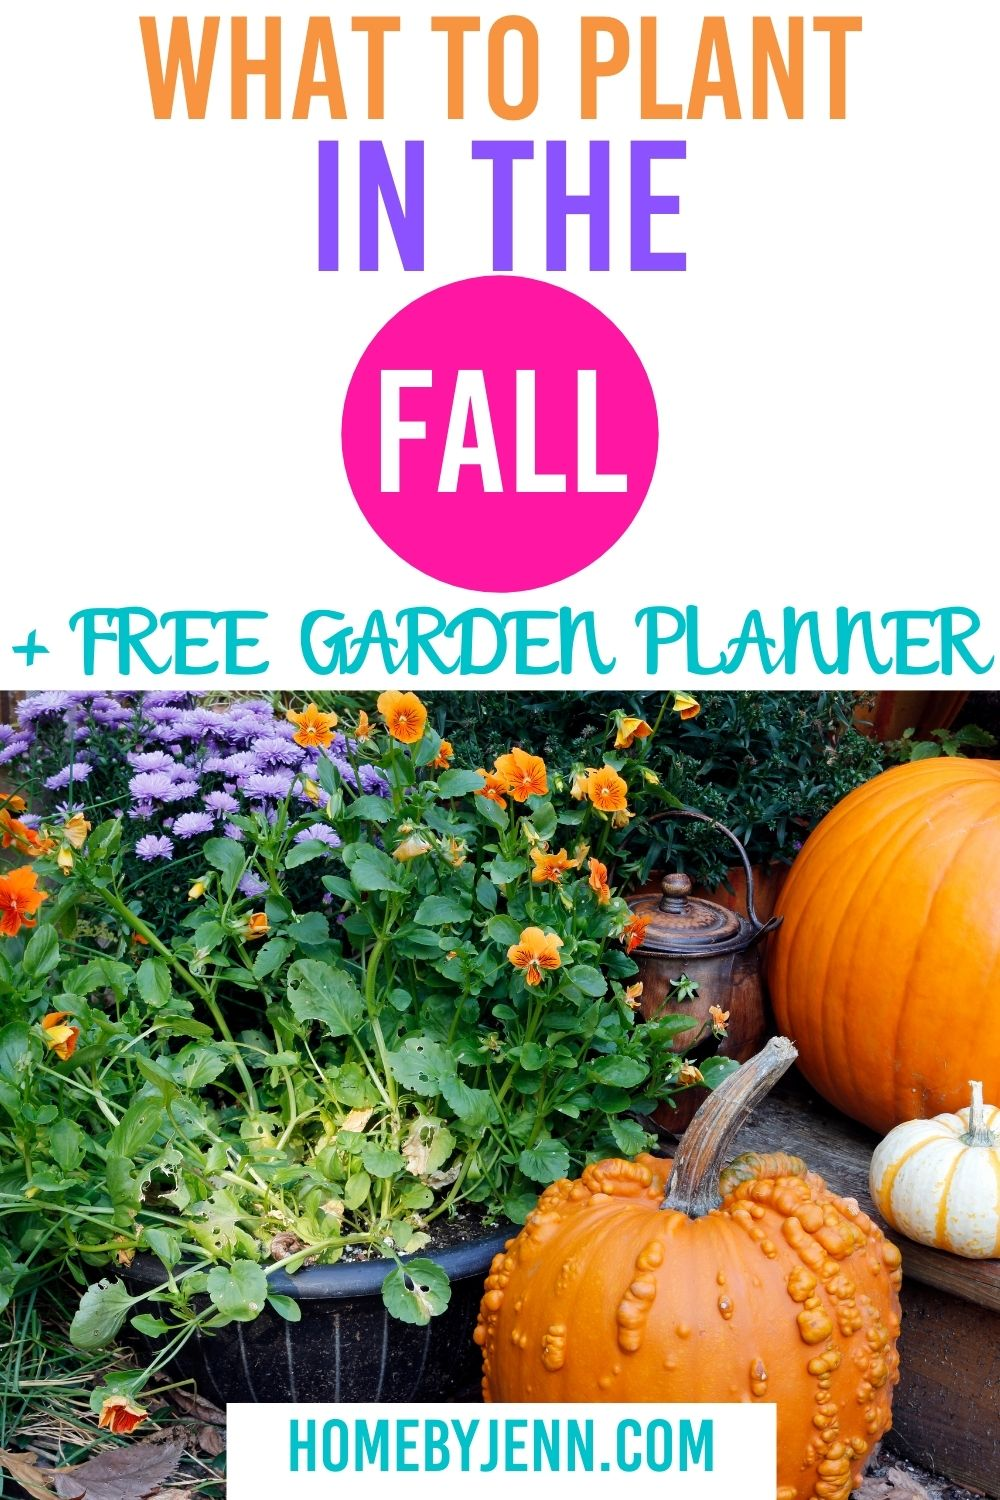 Plant a fall garden that will thrive by following the complete fall garden guide to what to plant this fall. #fall #fallgardening #fallgarden #squarefootgarden #garden via @homebyjenn